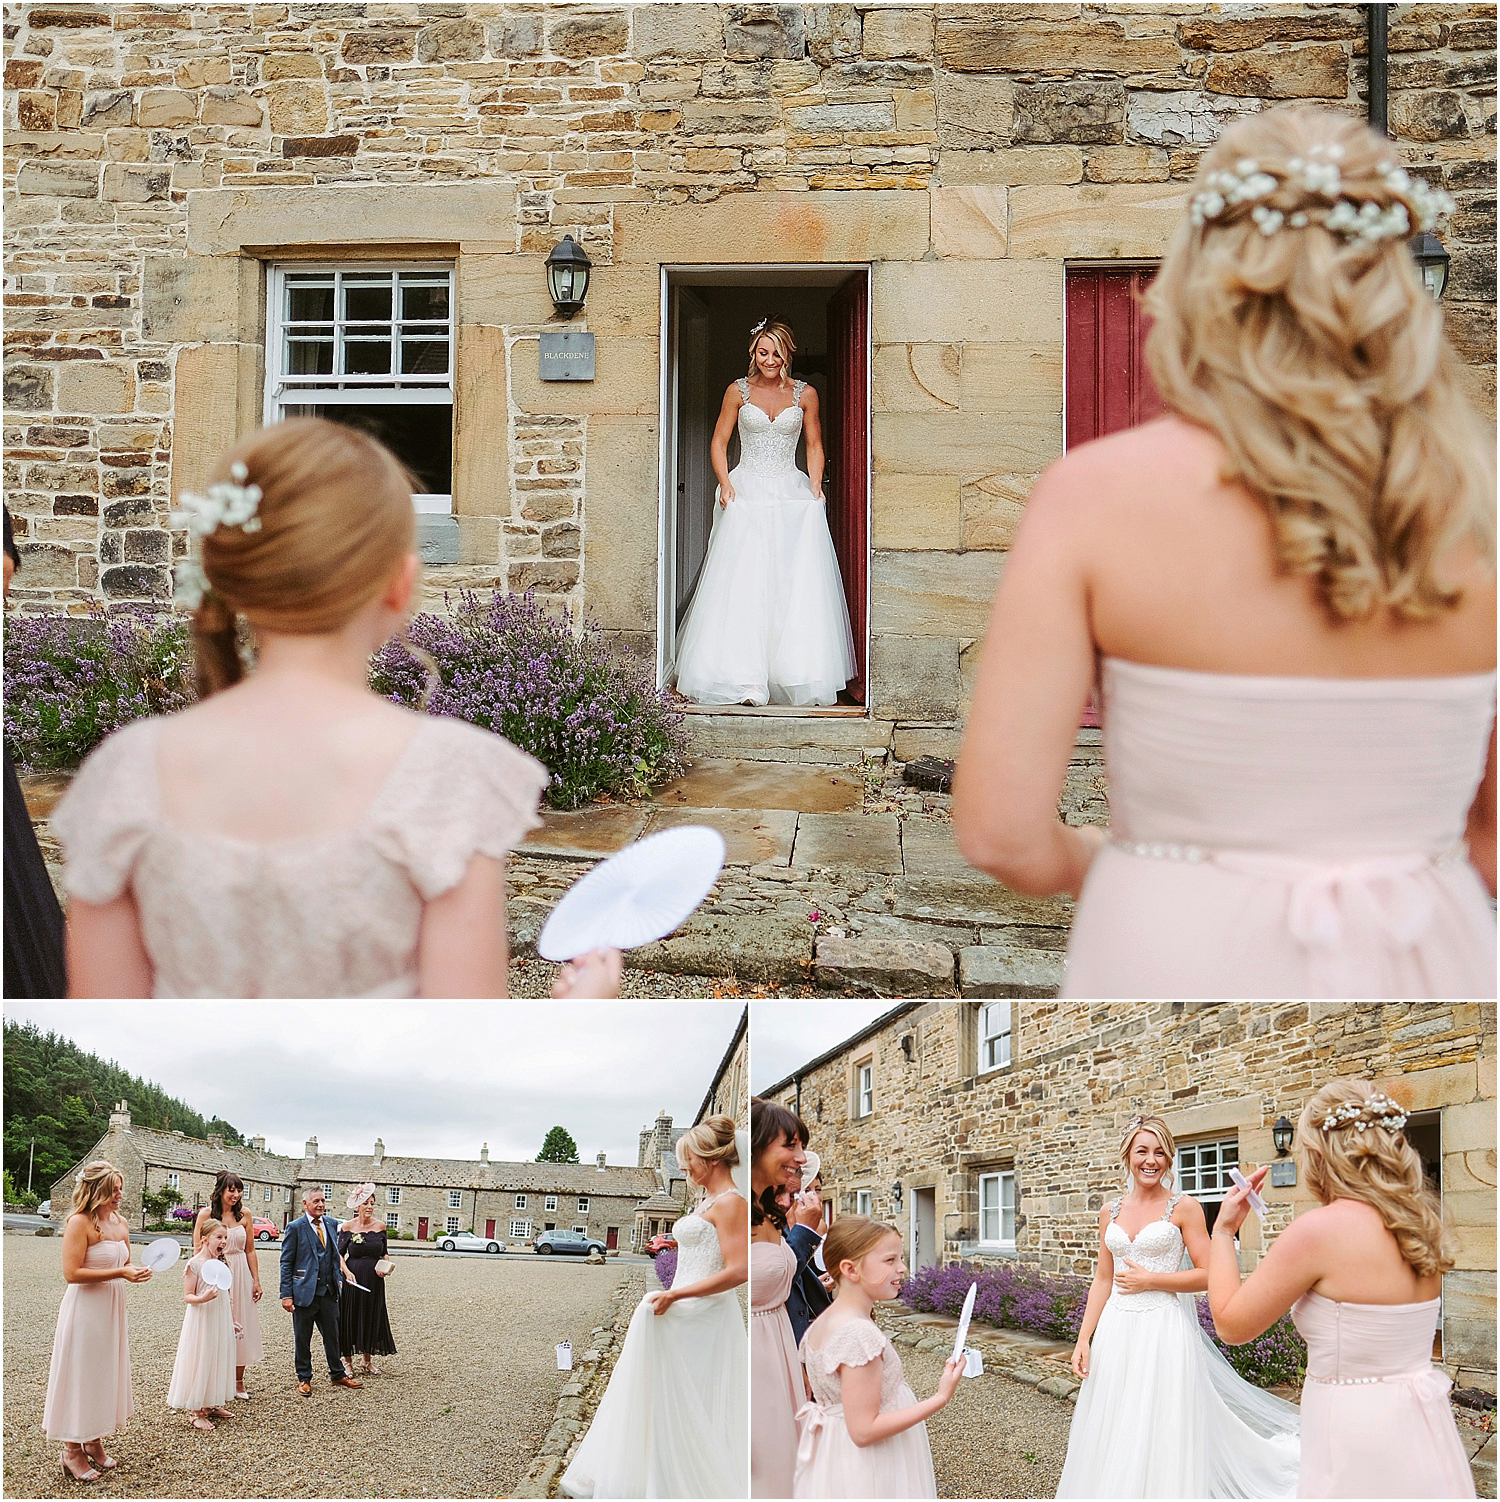 Wedding at Healey Barn - wedding photography by www.2tonephotography.co.uk 017.jpg